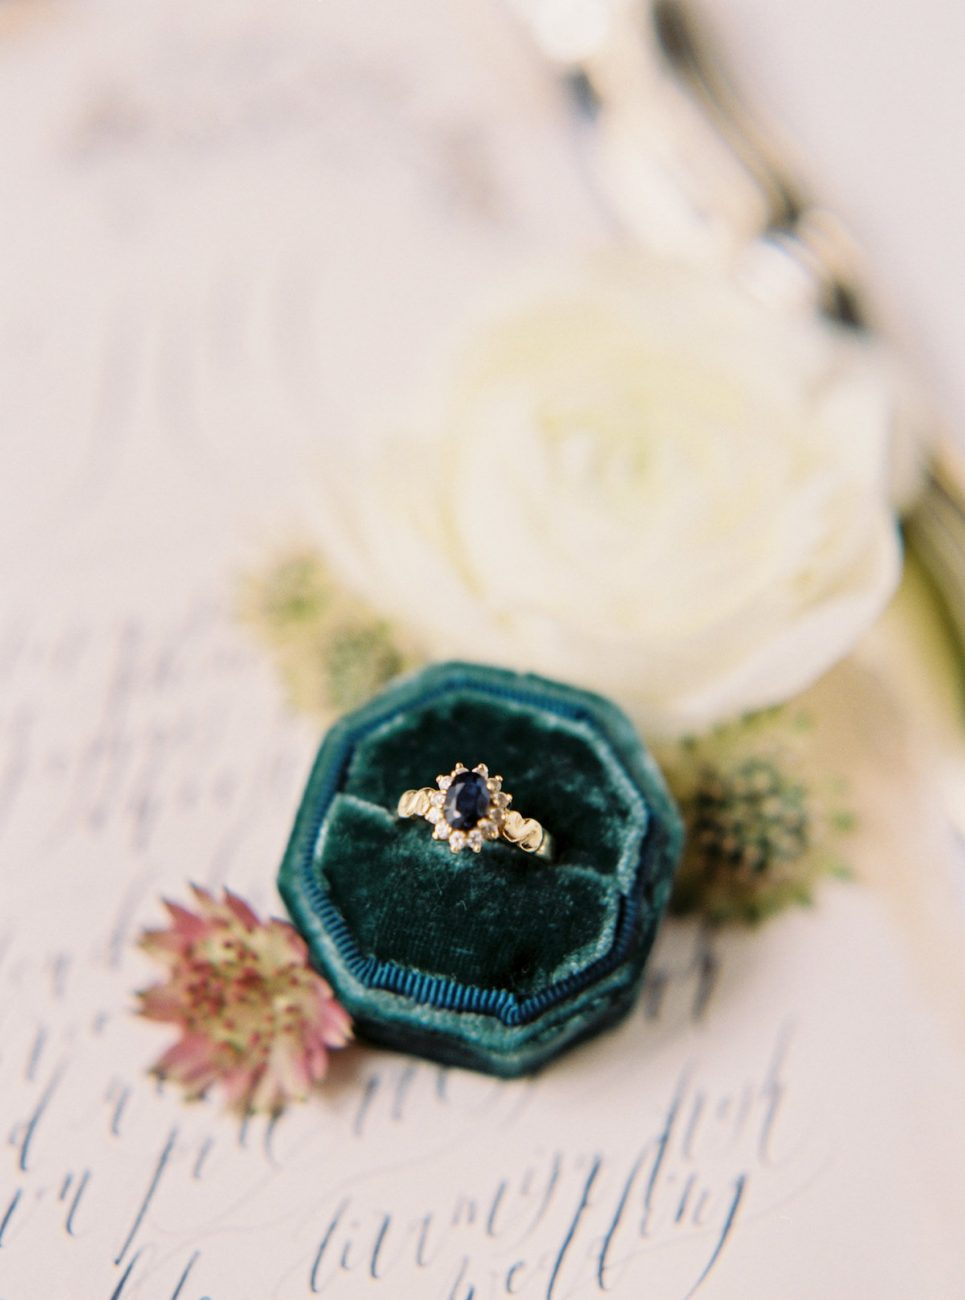 Palace Wedding Inspiration - ring with calligraphy